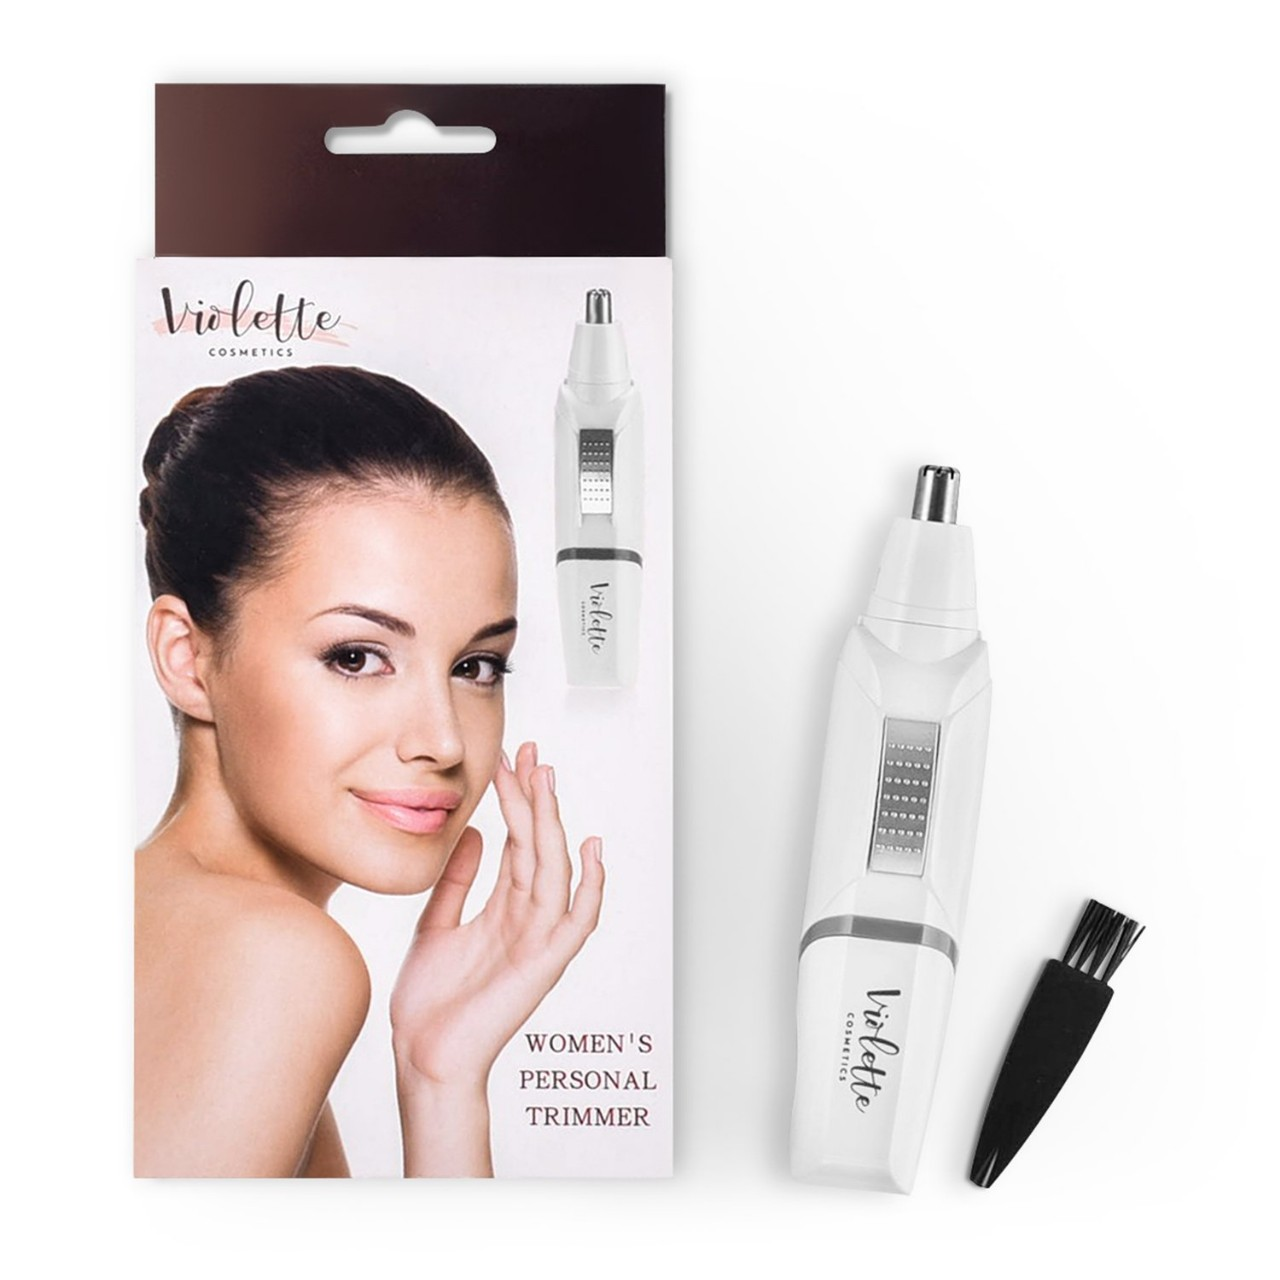 Best Facial and Nose Hair Trimmer for Women - Professional Quality for Nose, Facial and Ear Hair